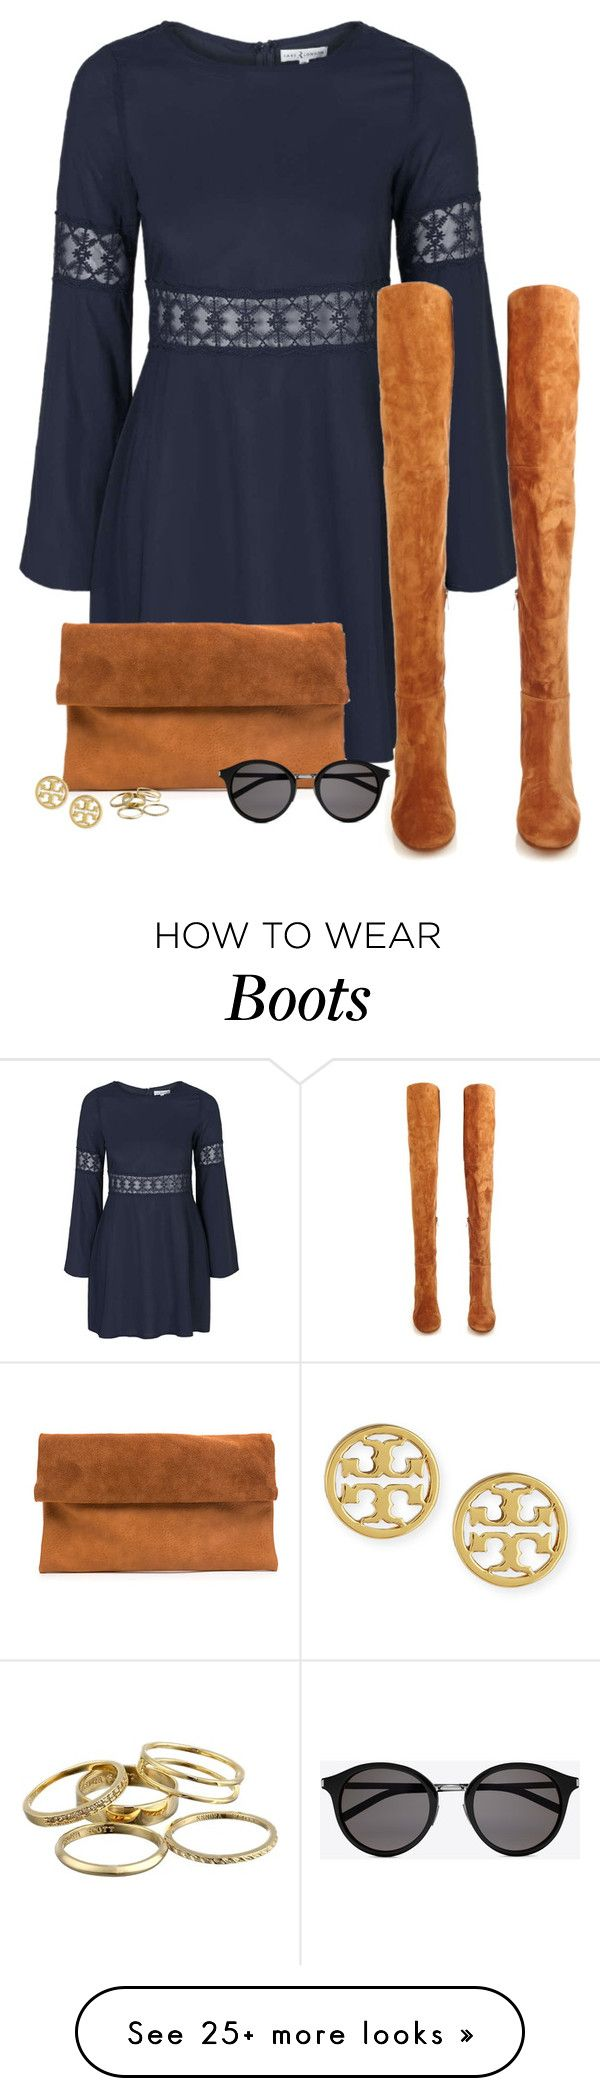 """""""Bell Sleeve Dress with Over-The-Knee Boots"""" by mrs-soudaphone-styles on Polyvore featuring Topshop, Gianvito Rossi, Yves Saint Laurent, Tory Burch, Kendra Scott, women's clothing, women, female, woman and misses"""